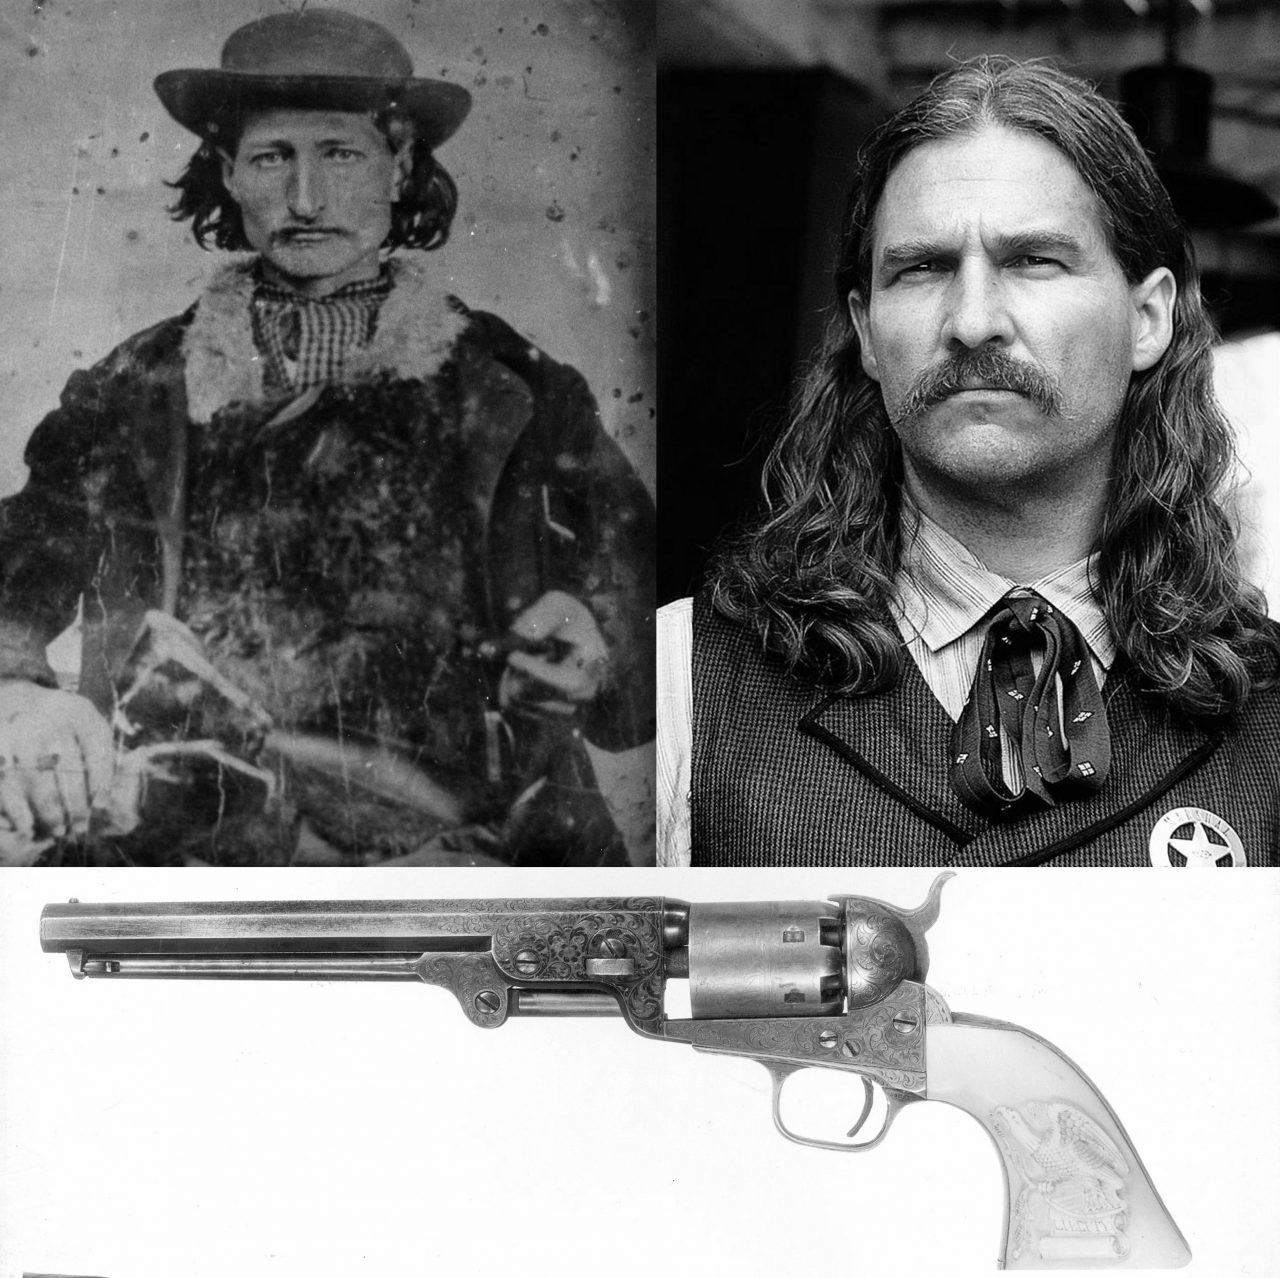 The Real Wild Bill Hickok Versus Hollywood Flashbak